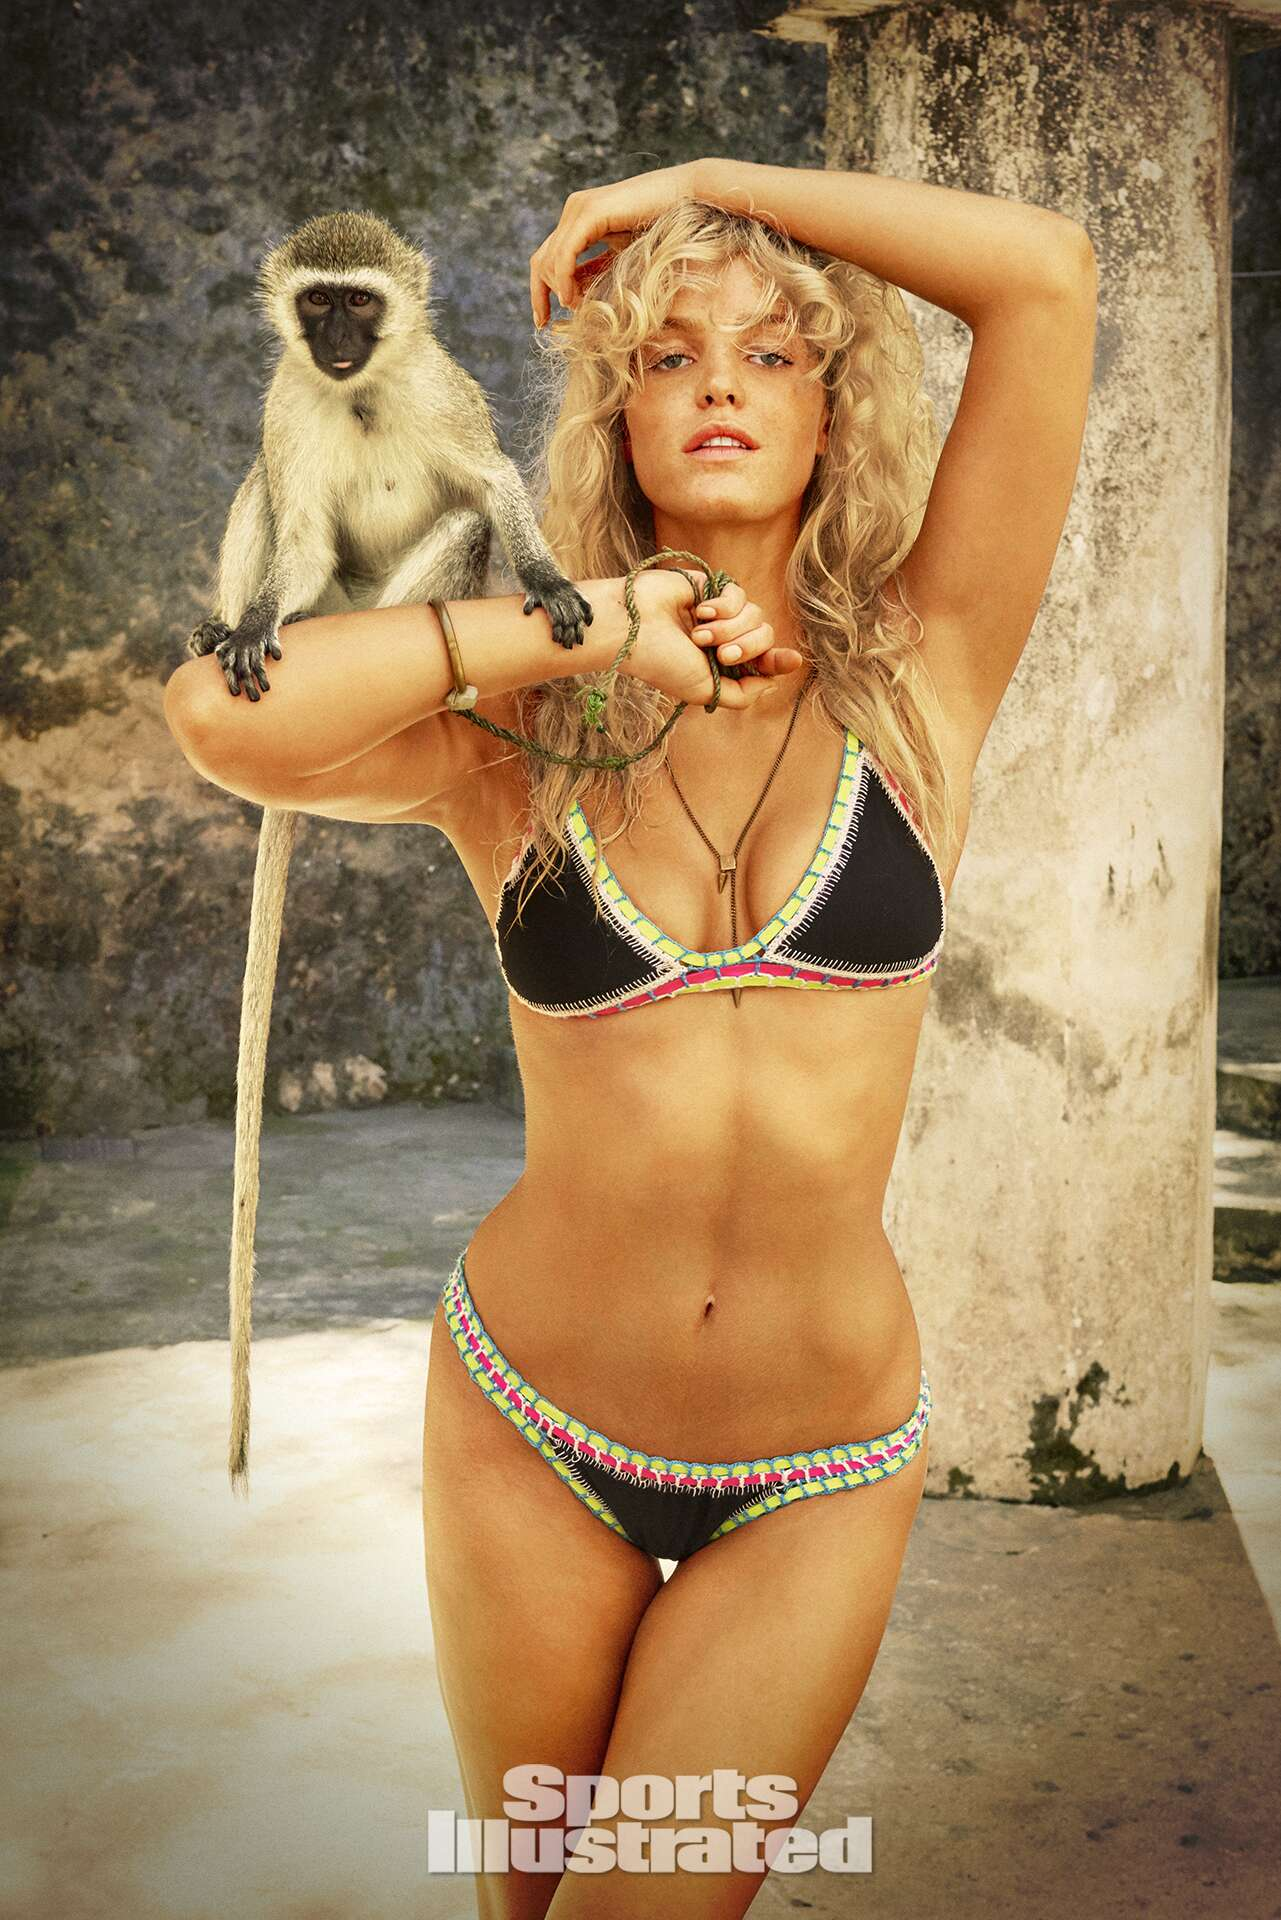 Erin Heatherton was photographed by Ruven Afanador in Zanzibar. Swimsuit by Indie Soul.